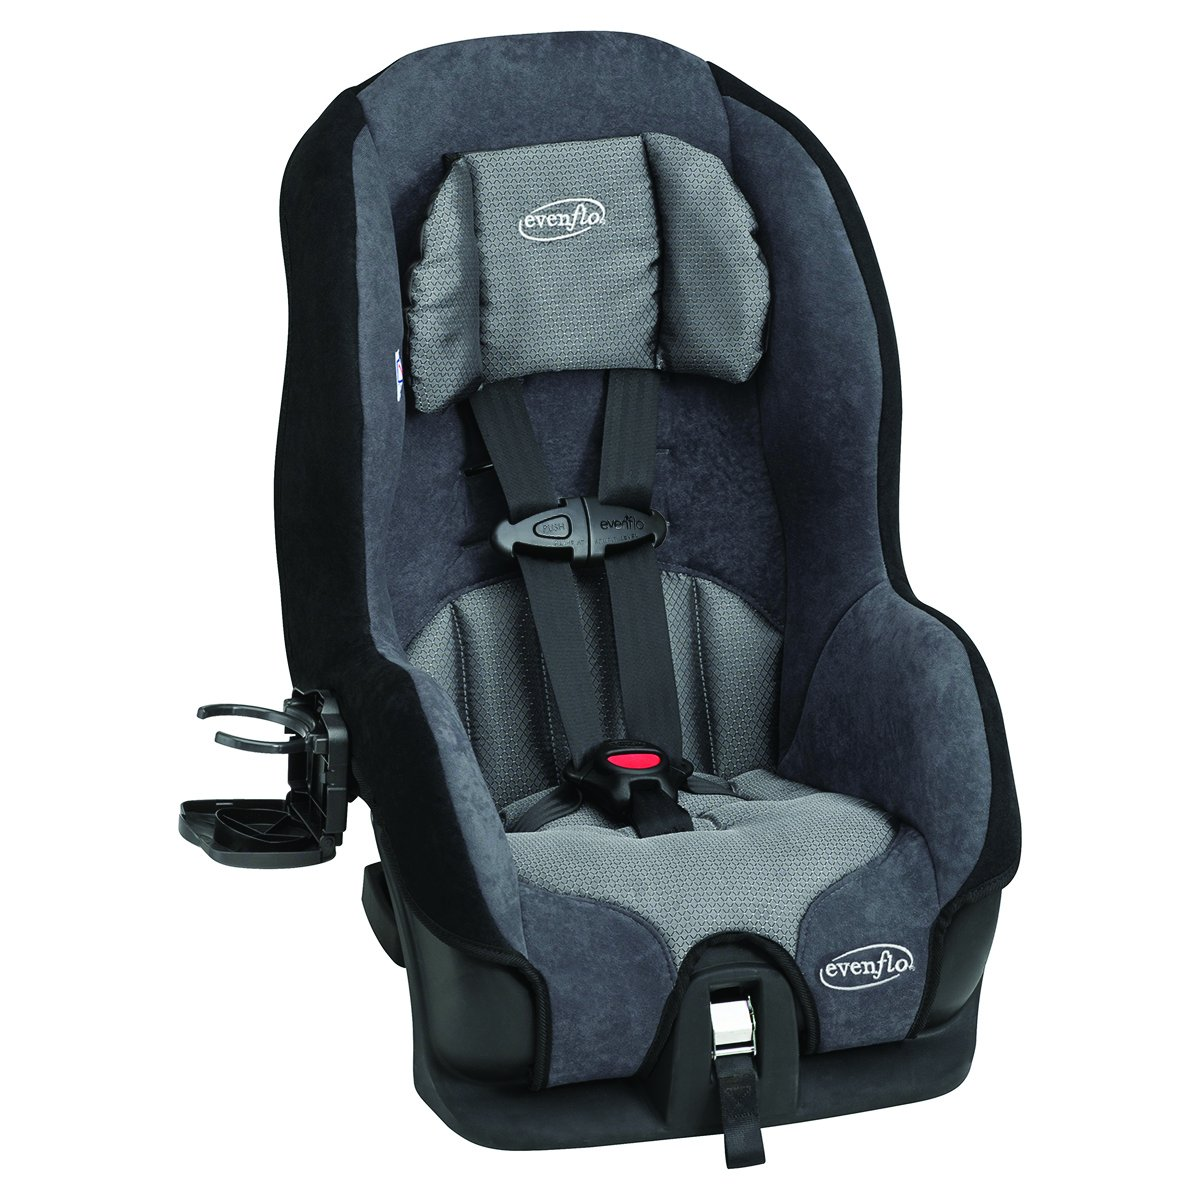 Top 8 Car Seats to Look for this Cyber Monday - Blog For Moms